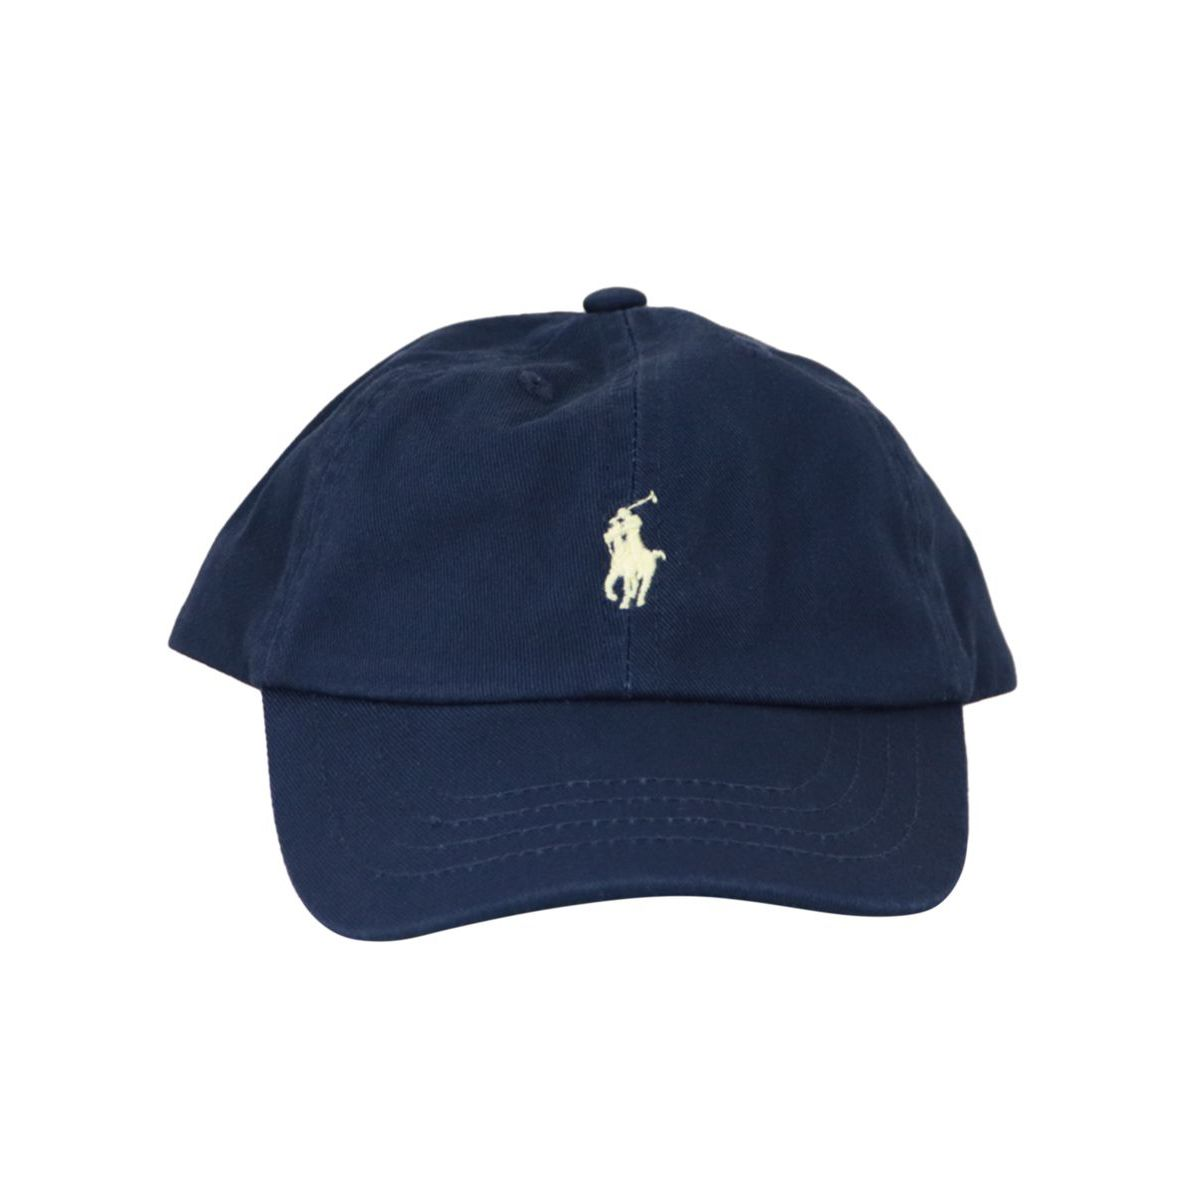 Cotton cap with contrasting embroidered logo Navy Polo Ralph Lauren